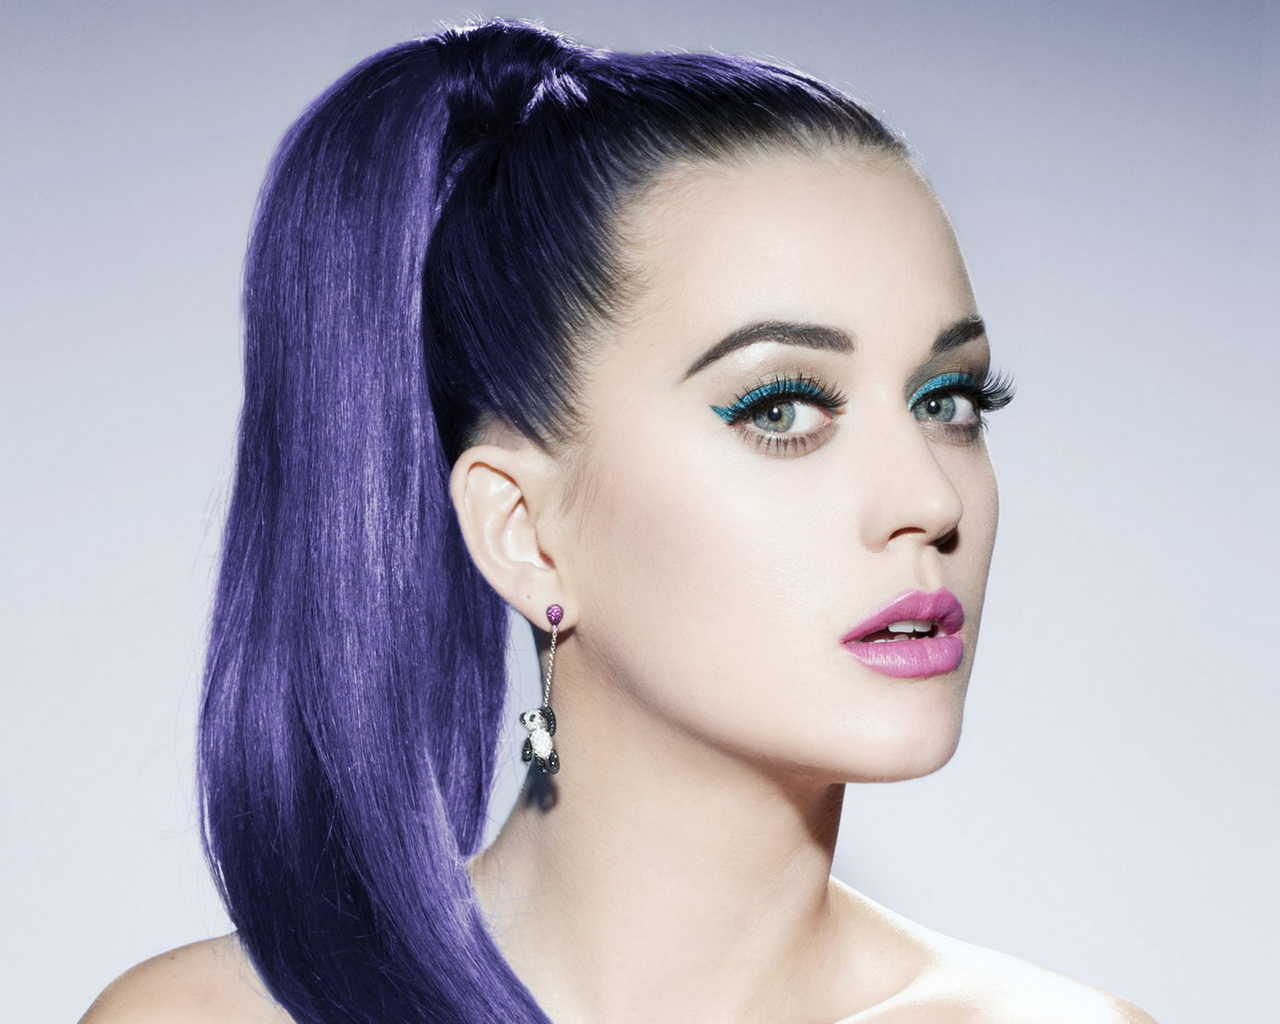 Katy Perry Wallpaper 31